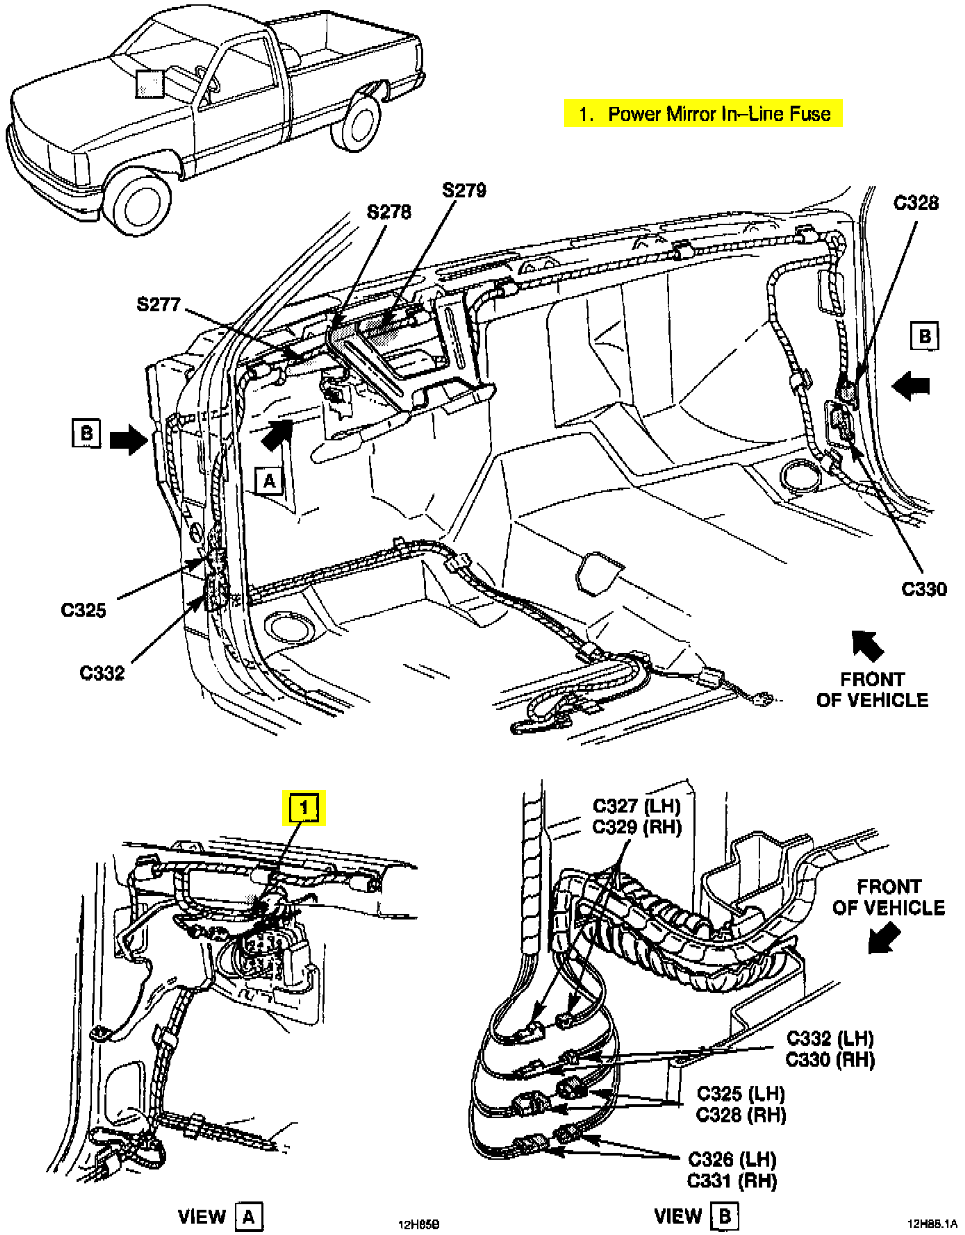 i need the wiring diagram for the power mirrors for a 1994